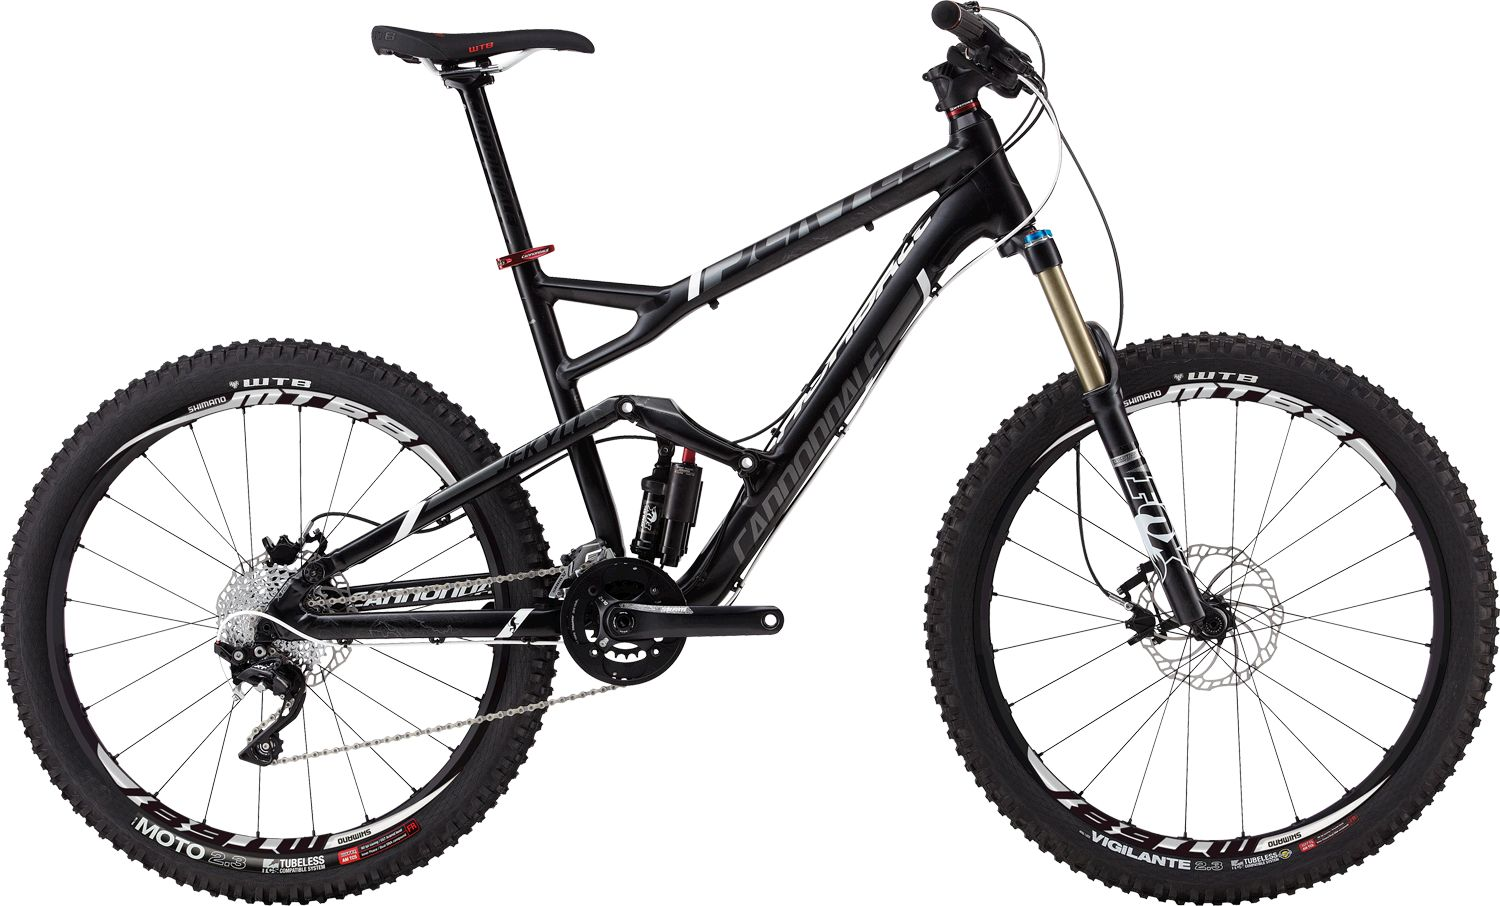 d9559e881e1 Cannondale JEKYLL 3 2013 review - The Bike List